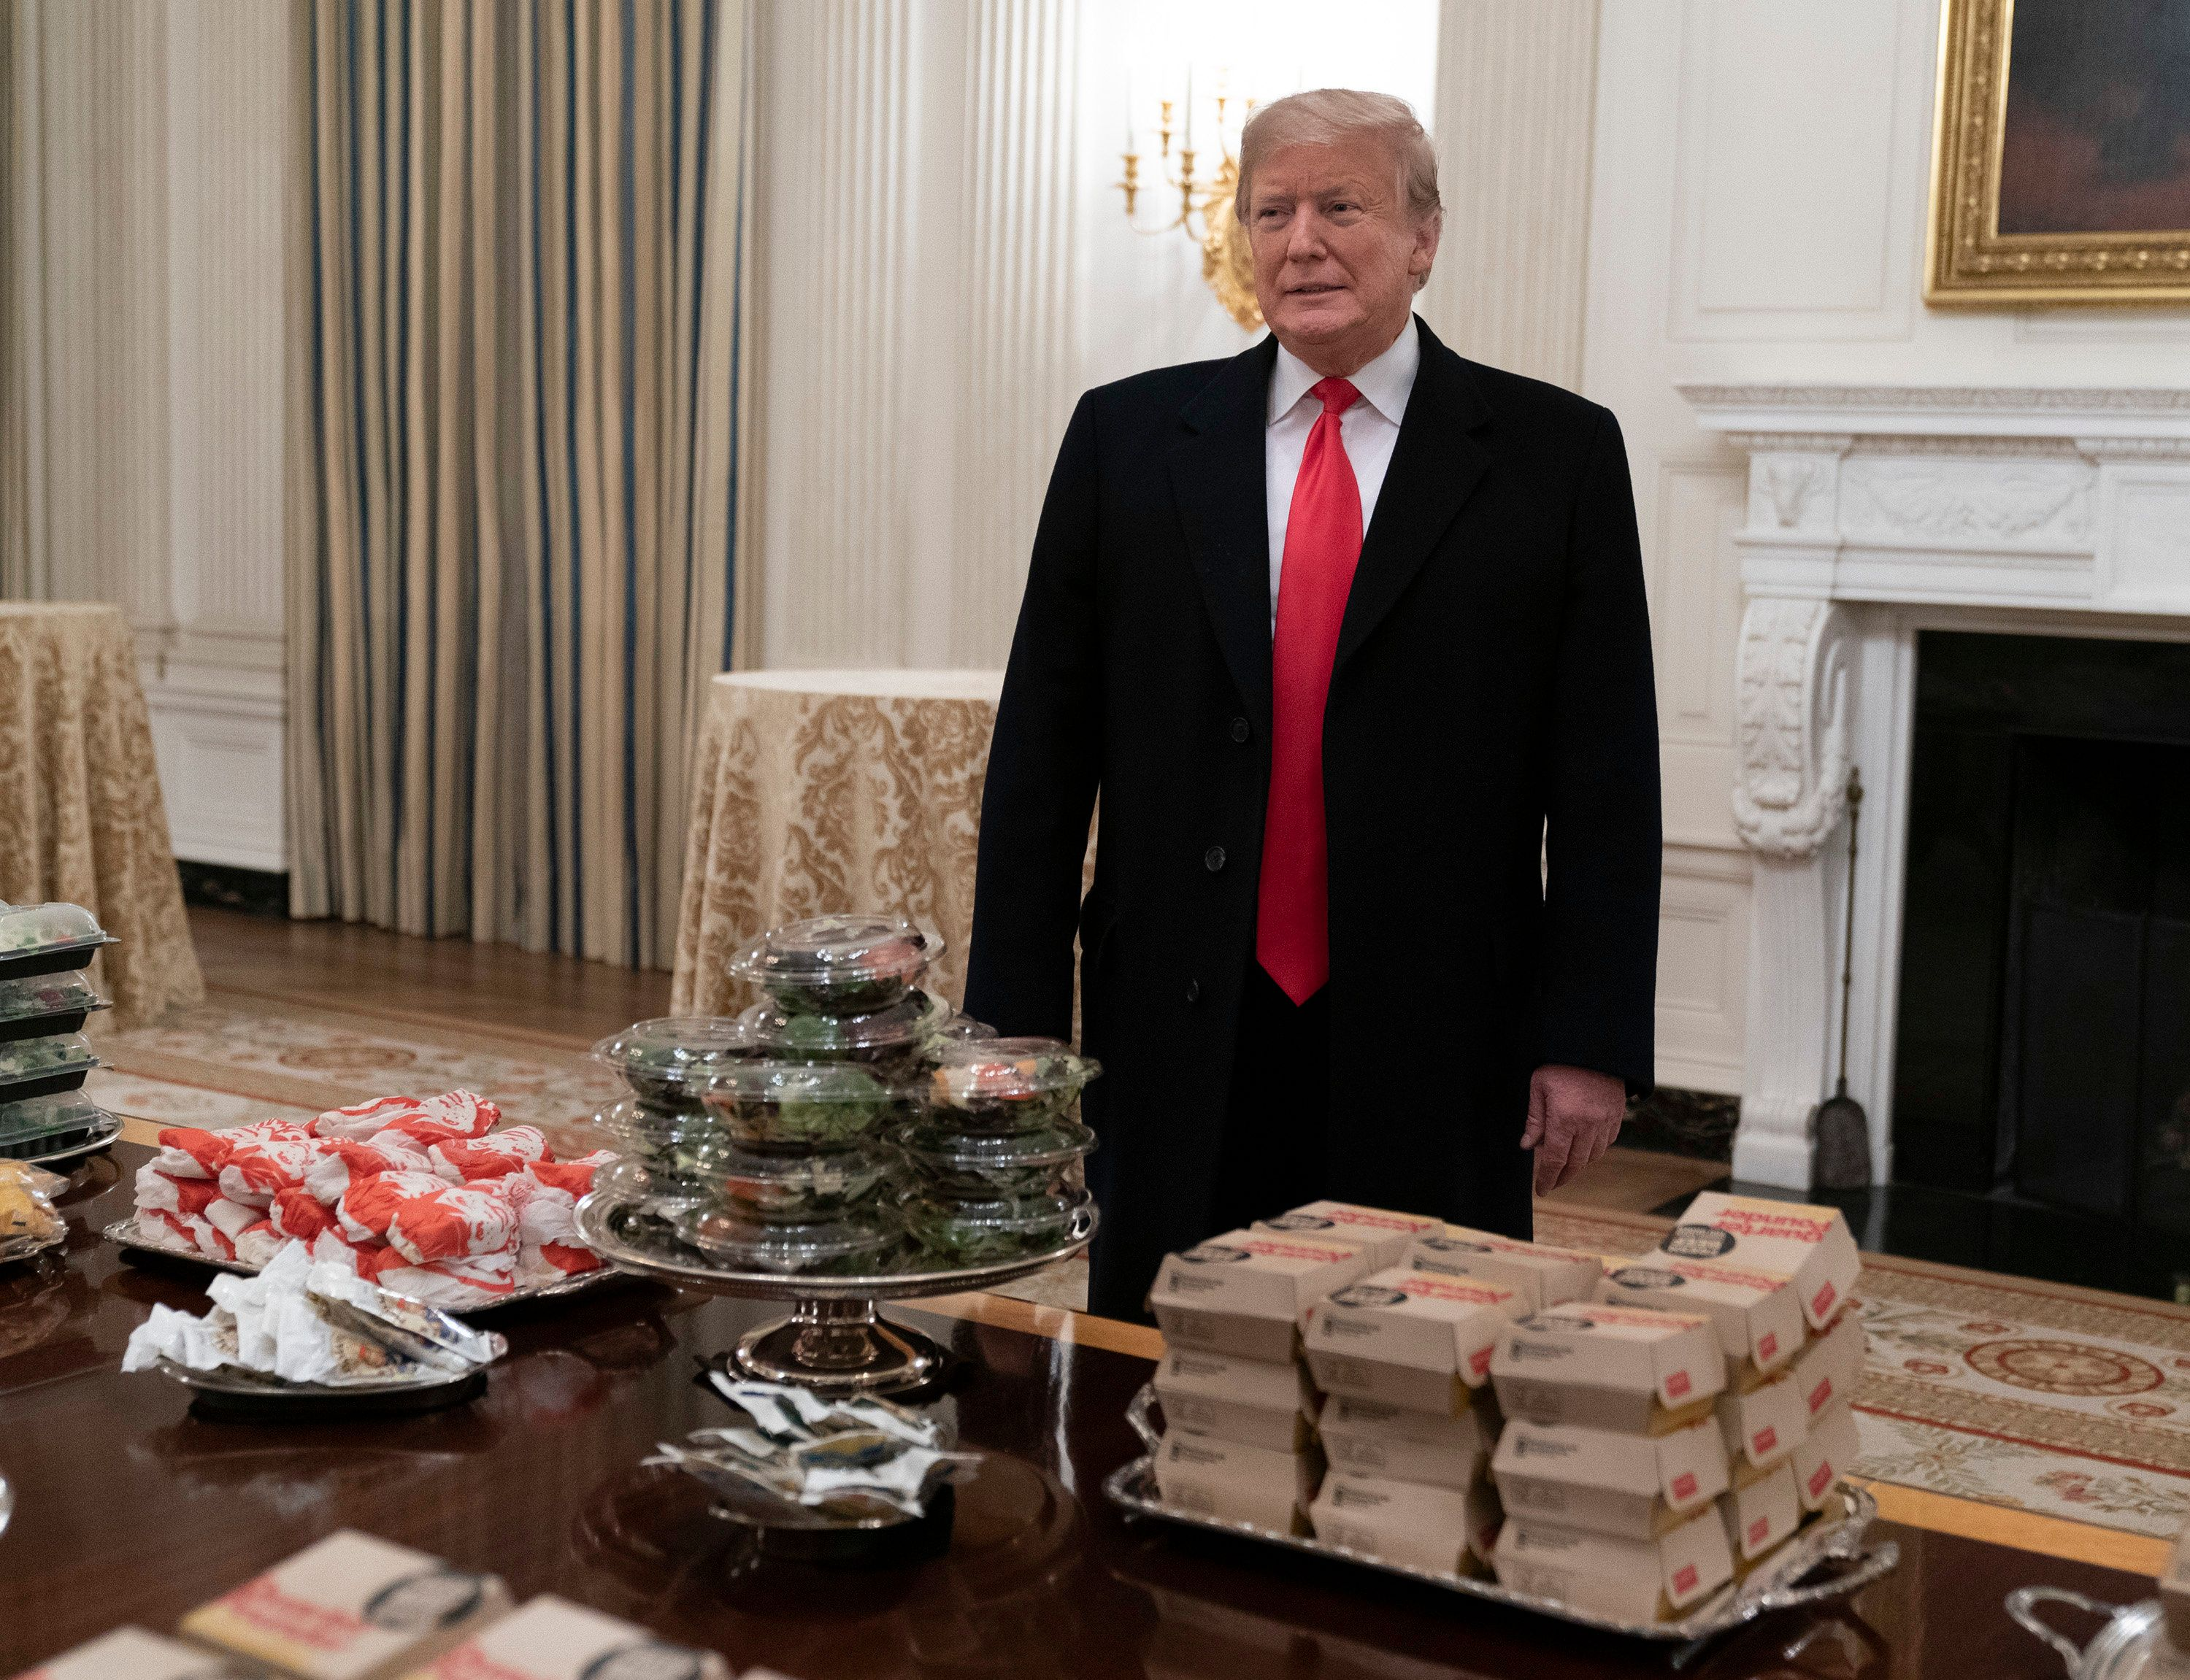 WASHINGTON, DC - JANUARY 14: U.S. President Donald Trump presents fast food to be served to the Clemson Tigers in celebration of their national championship at the White House on January 14, 2019 in Washington, DC. Clemson won their second title in three years after beating Alabama 44-16 on January 7th. (Photo by Chris Kleponis - Pool/Getty Images)